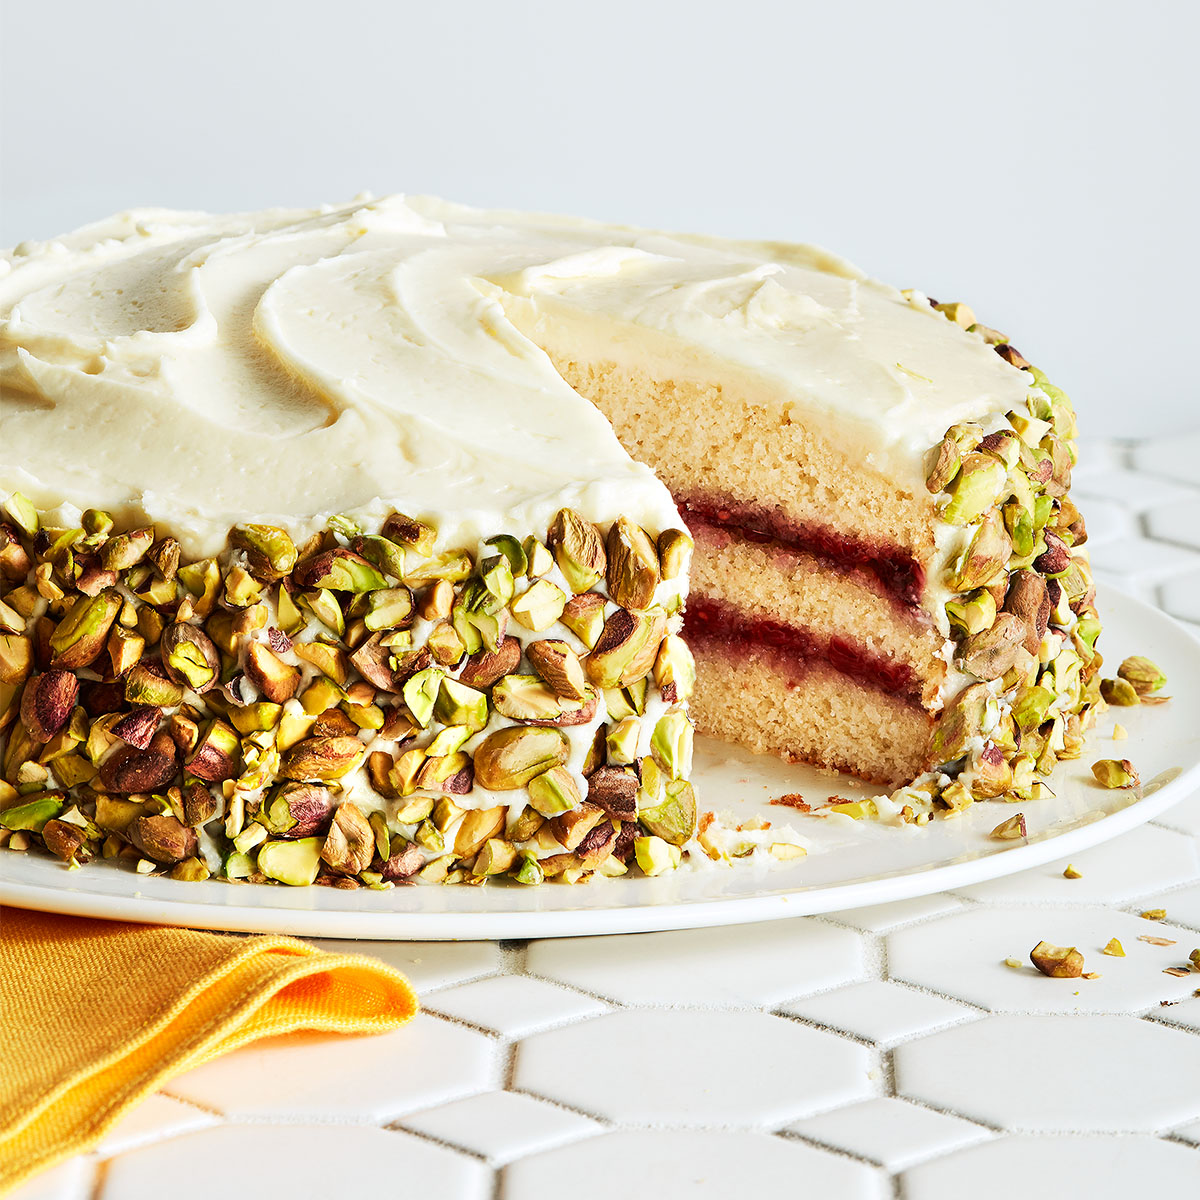 Gluten-Free Layer Cake with Jam & Pistachios